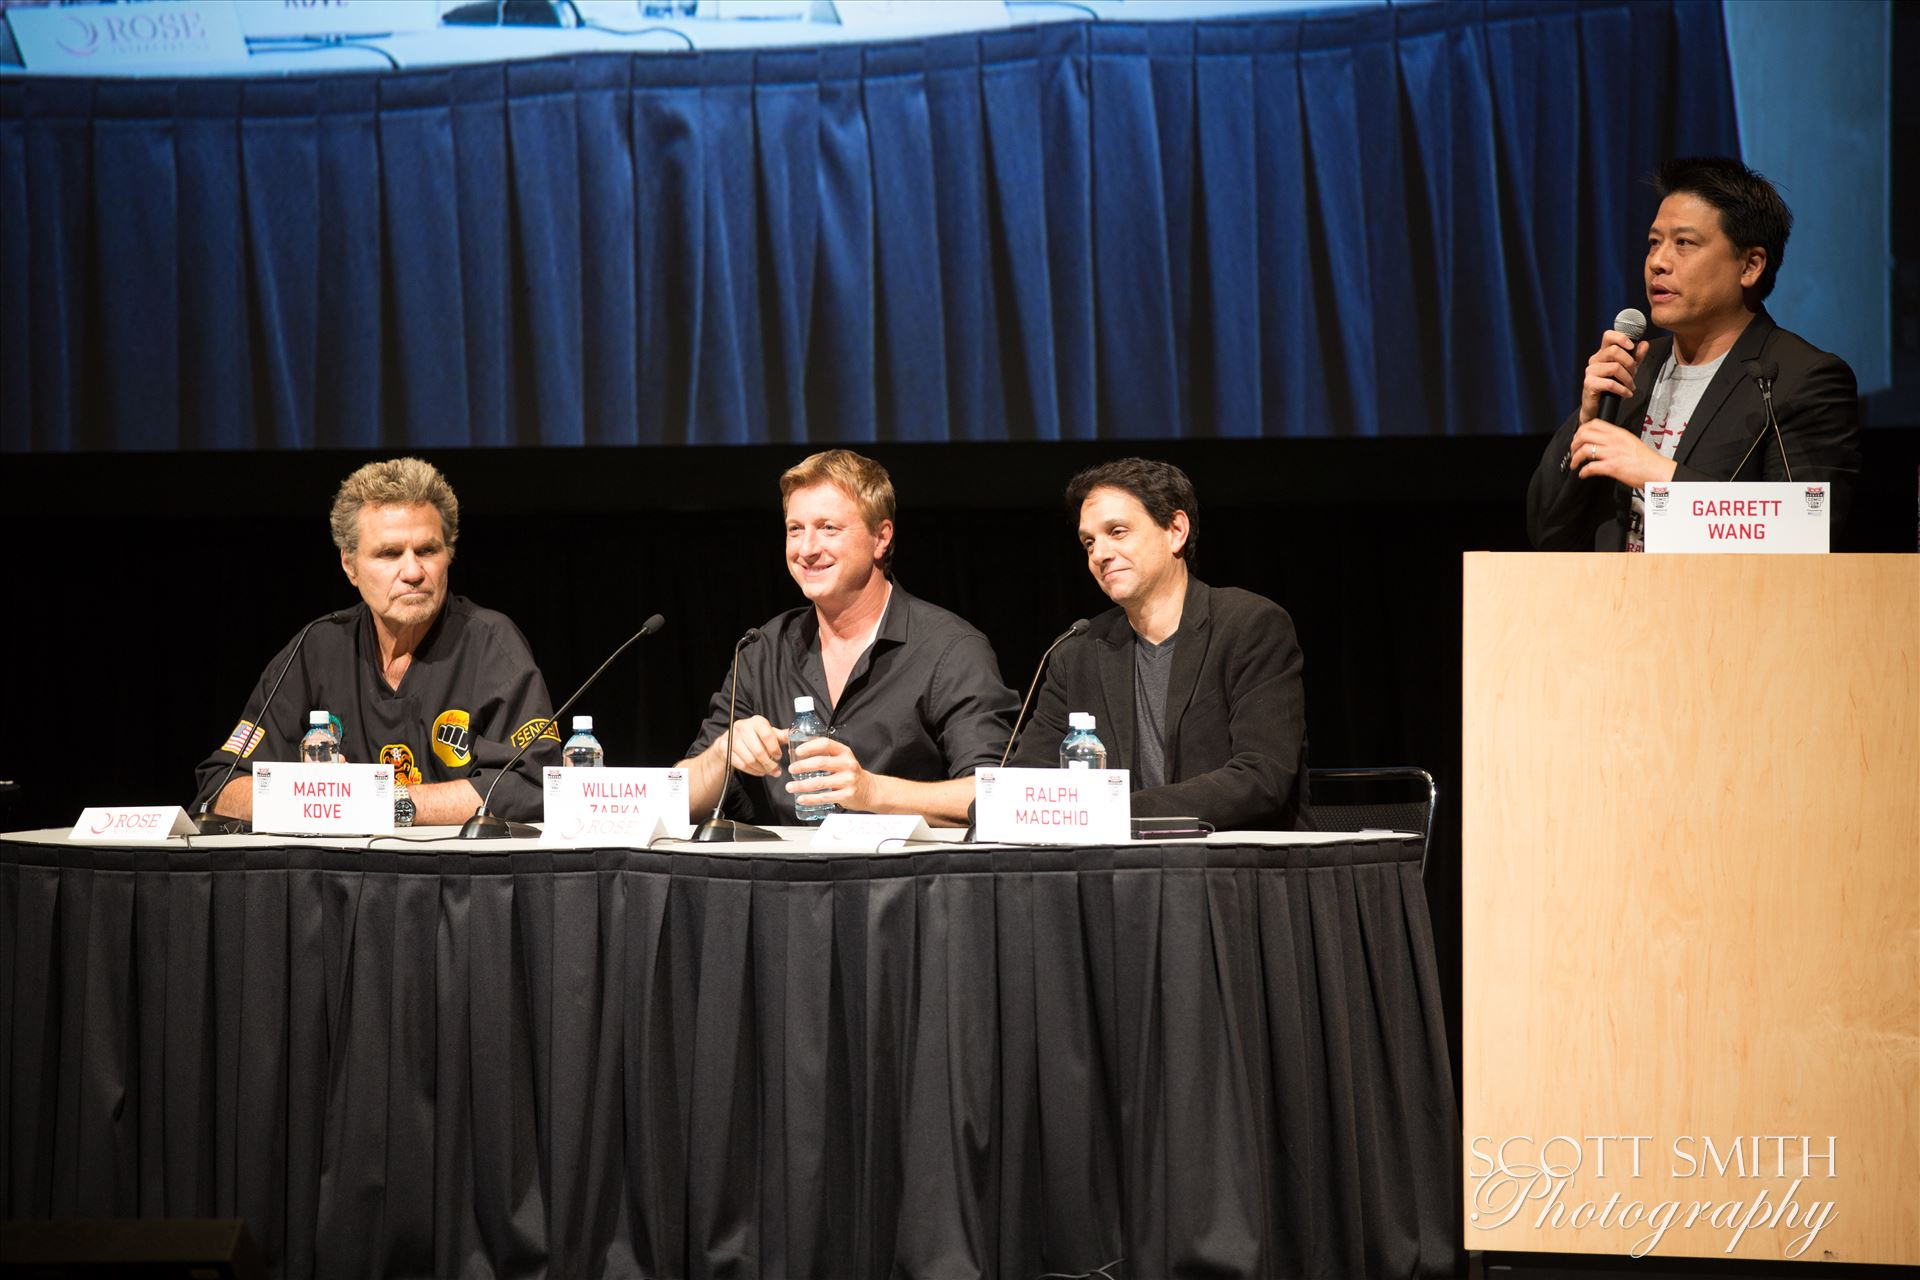 Denver Comic Con 2016 37 - Denver Comic Con 2016 at the Colorado Convention Center. Garrett Wang, Ralph Macchio, Martin Kove and William Zabka. by D Scott Smith